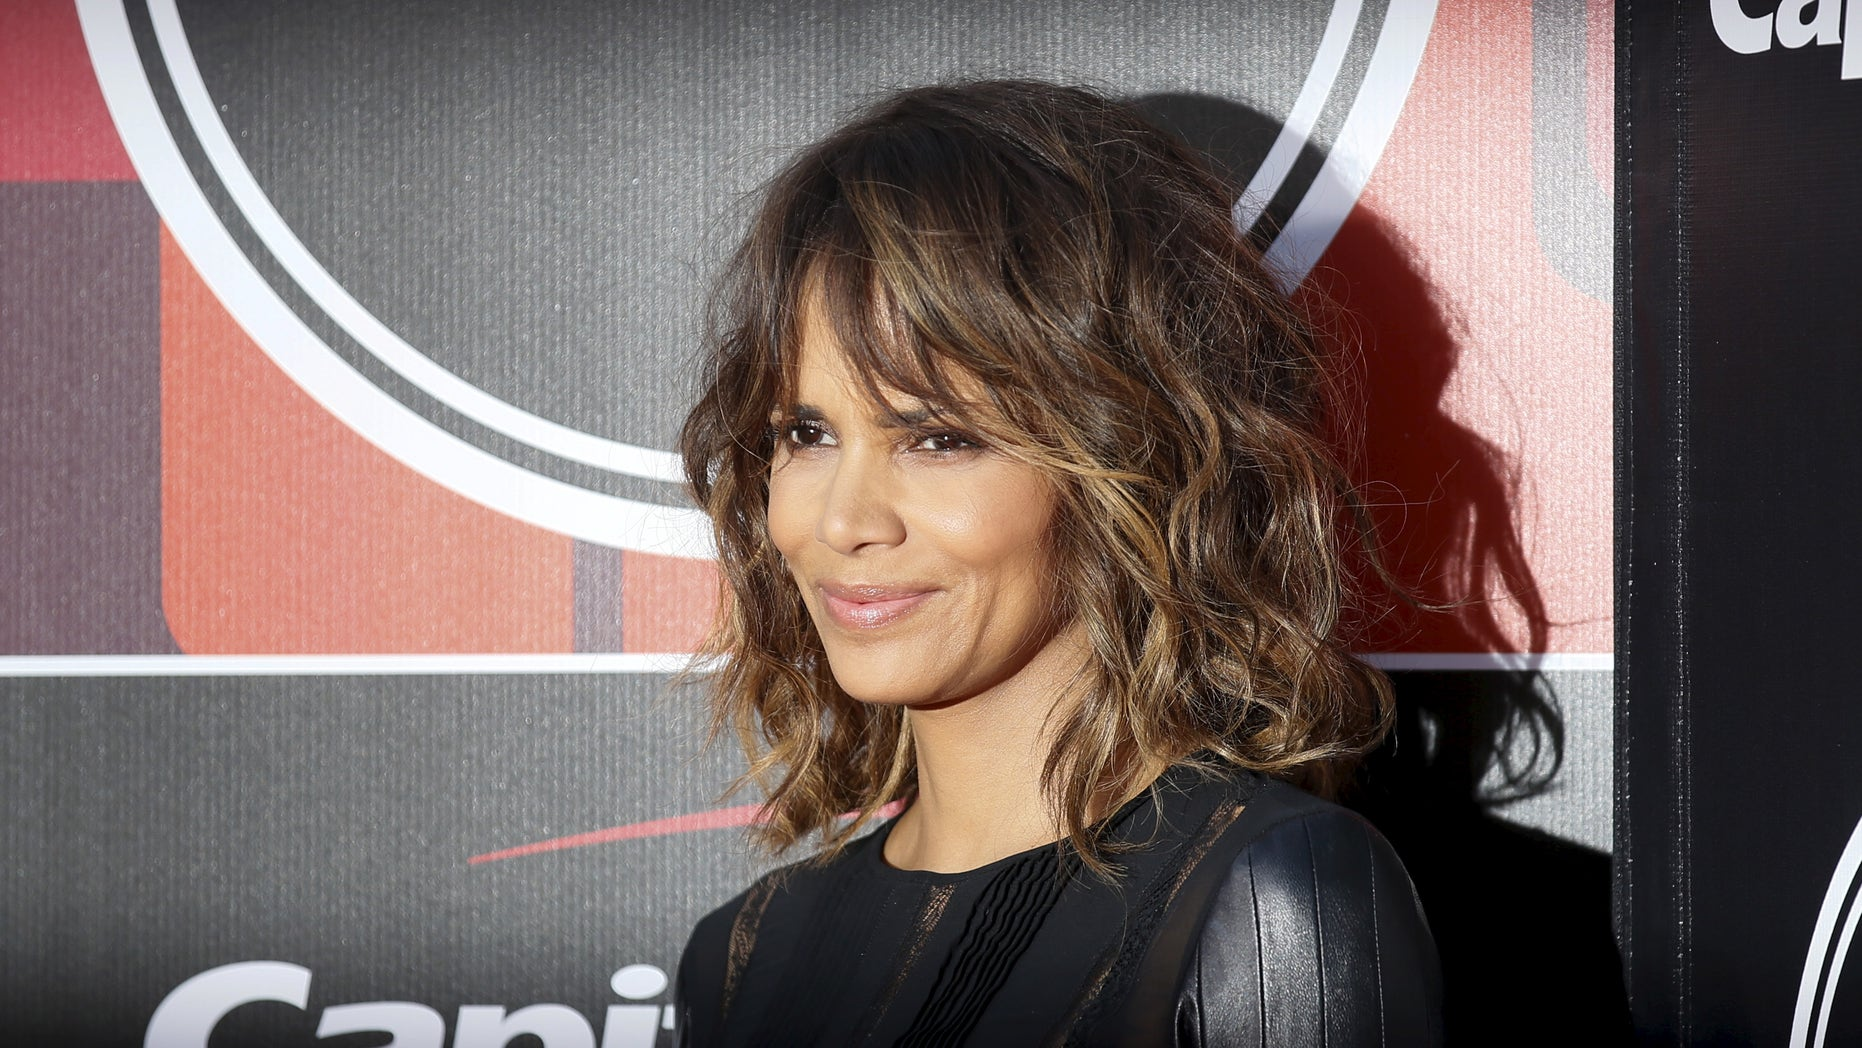 Actress Halle Berry arrives for the 2015 ESPY Awards in Los Angeles, California July 15, 2015.  REUTERS/Danny Moloshok - RTX1KGMB